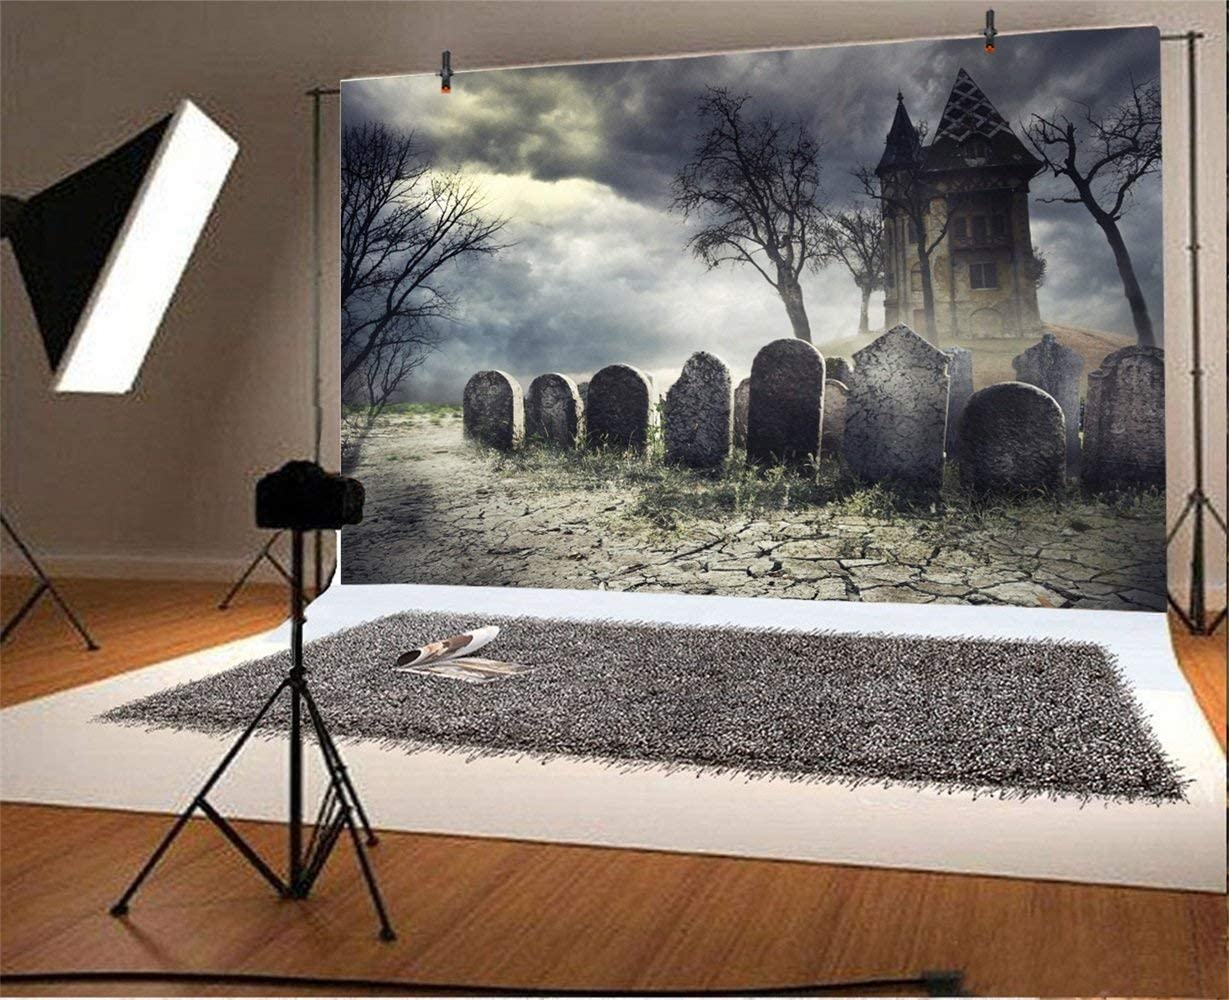 Halloween Theme Backdrop 8x6ft Polyester Photography Background Ghastly Wilderness Grinning Elvish Pumpink Lamps Haunted Graveyard Horrible Flying Bats Horror Night Trick or Treat Kids Baby Shoot